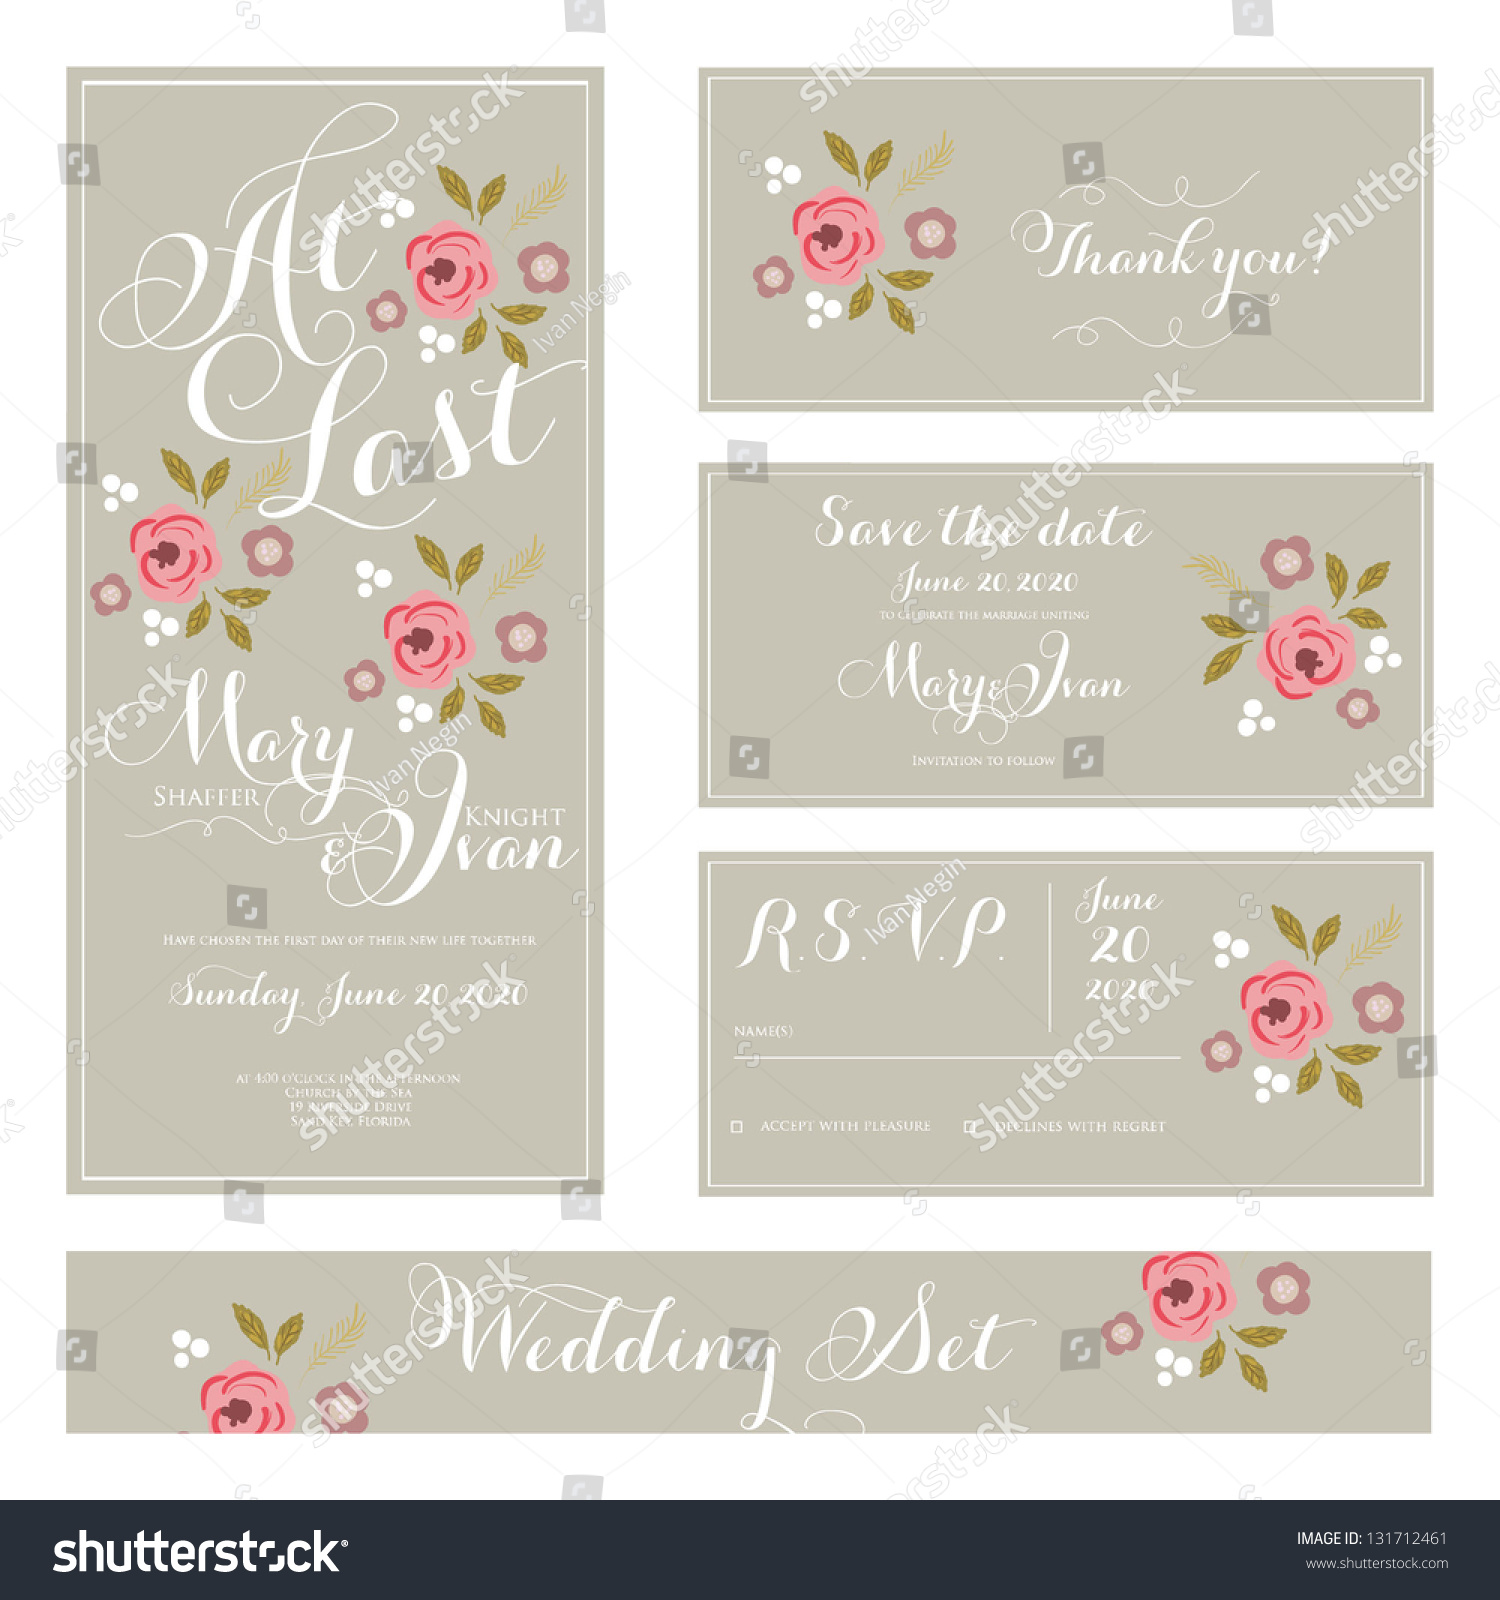 thank you cards thank you cards wedding Thank You For Being My Bridesmaid Card wedding cards